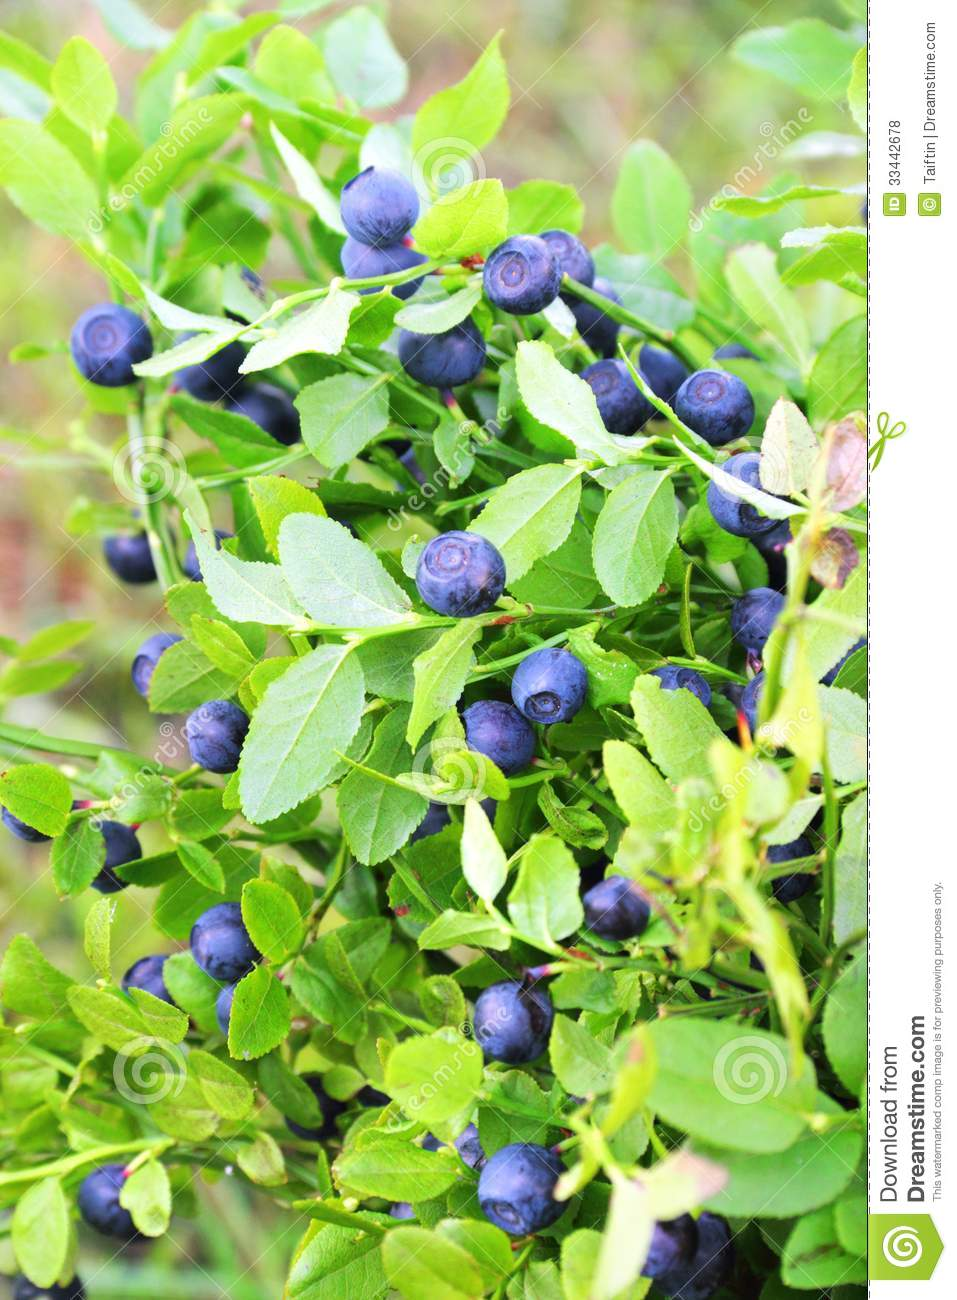 how to grow blueberries in philippines